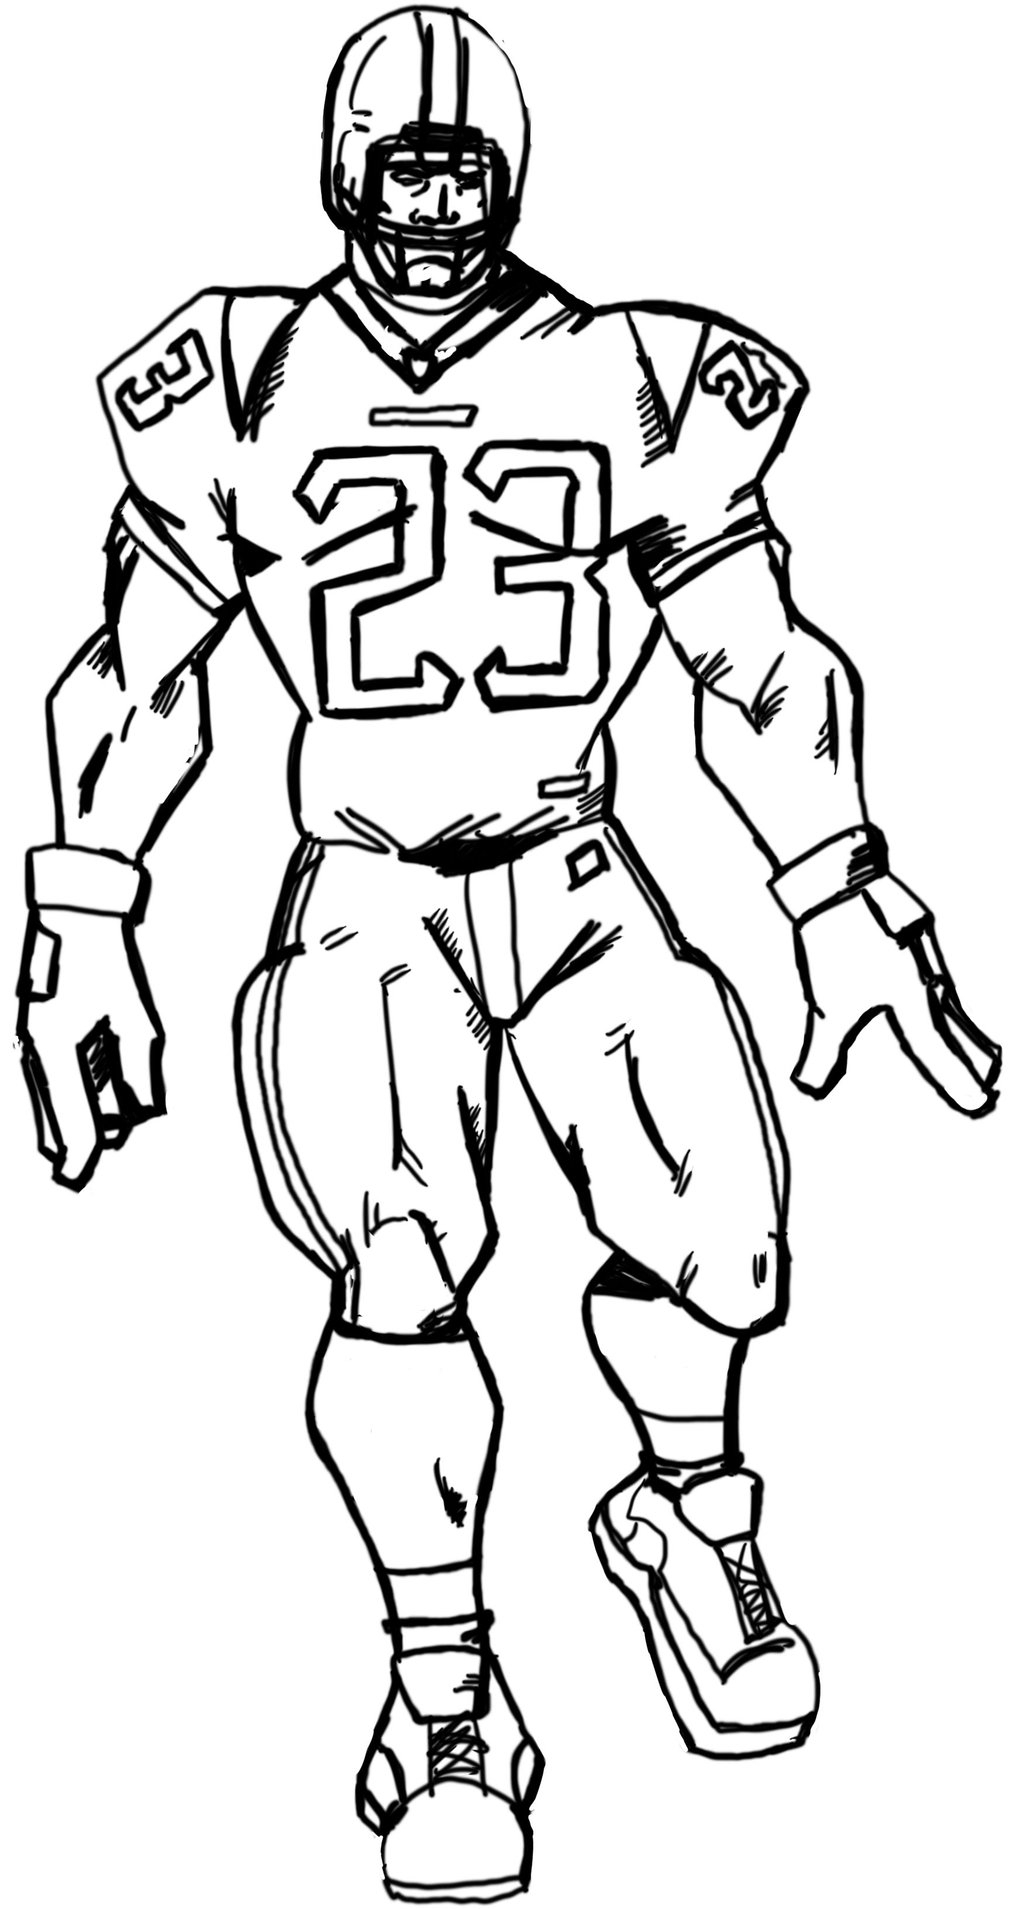 how to draw a football player easy drawing of football players free download on clipartmag football player a draw how to easy